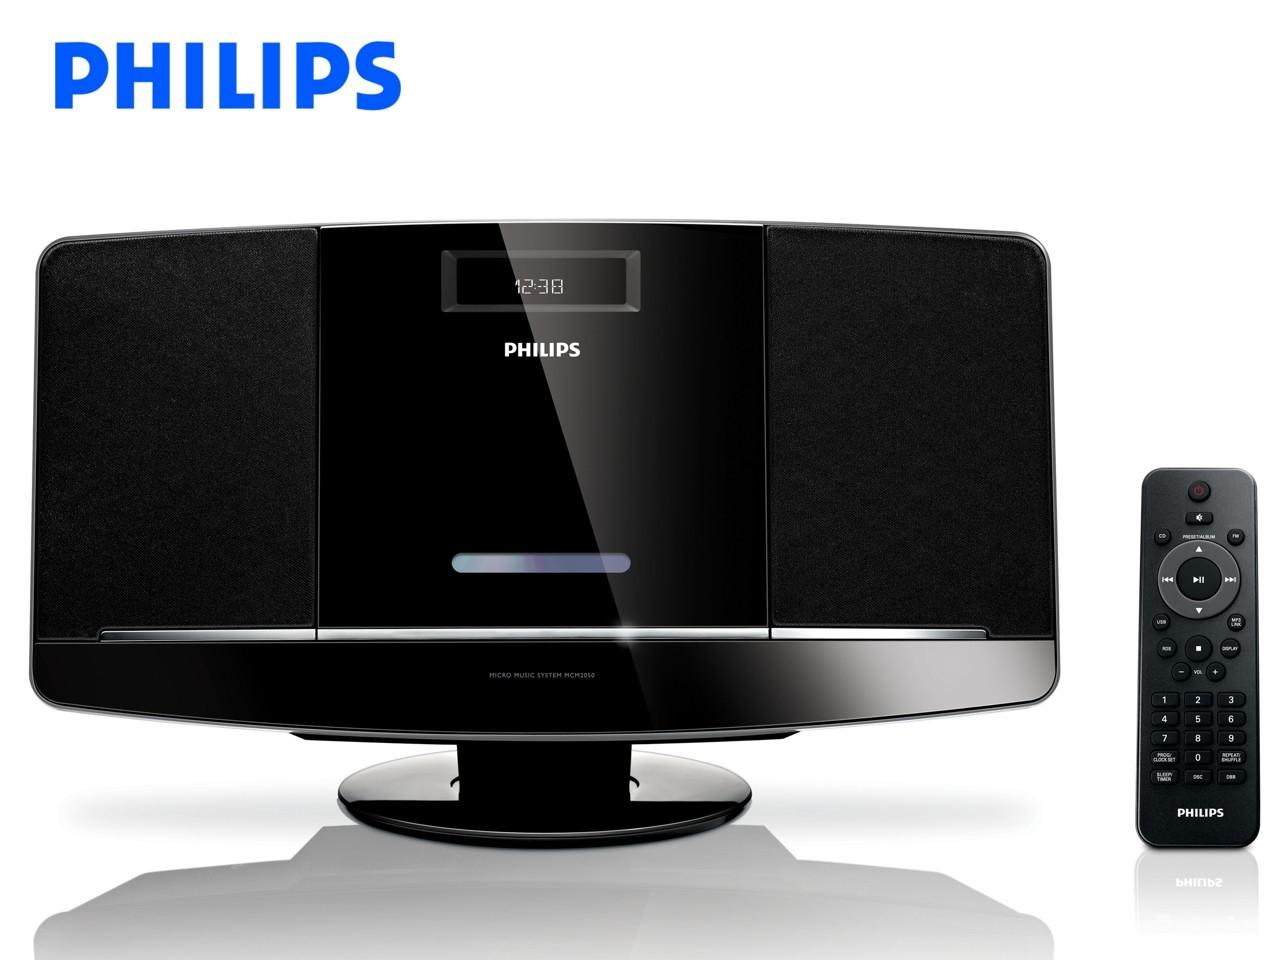 phillips chat I would like to receive promotional communications – based on my preferences and behavior – about philips products, services, events and promotions.